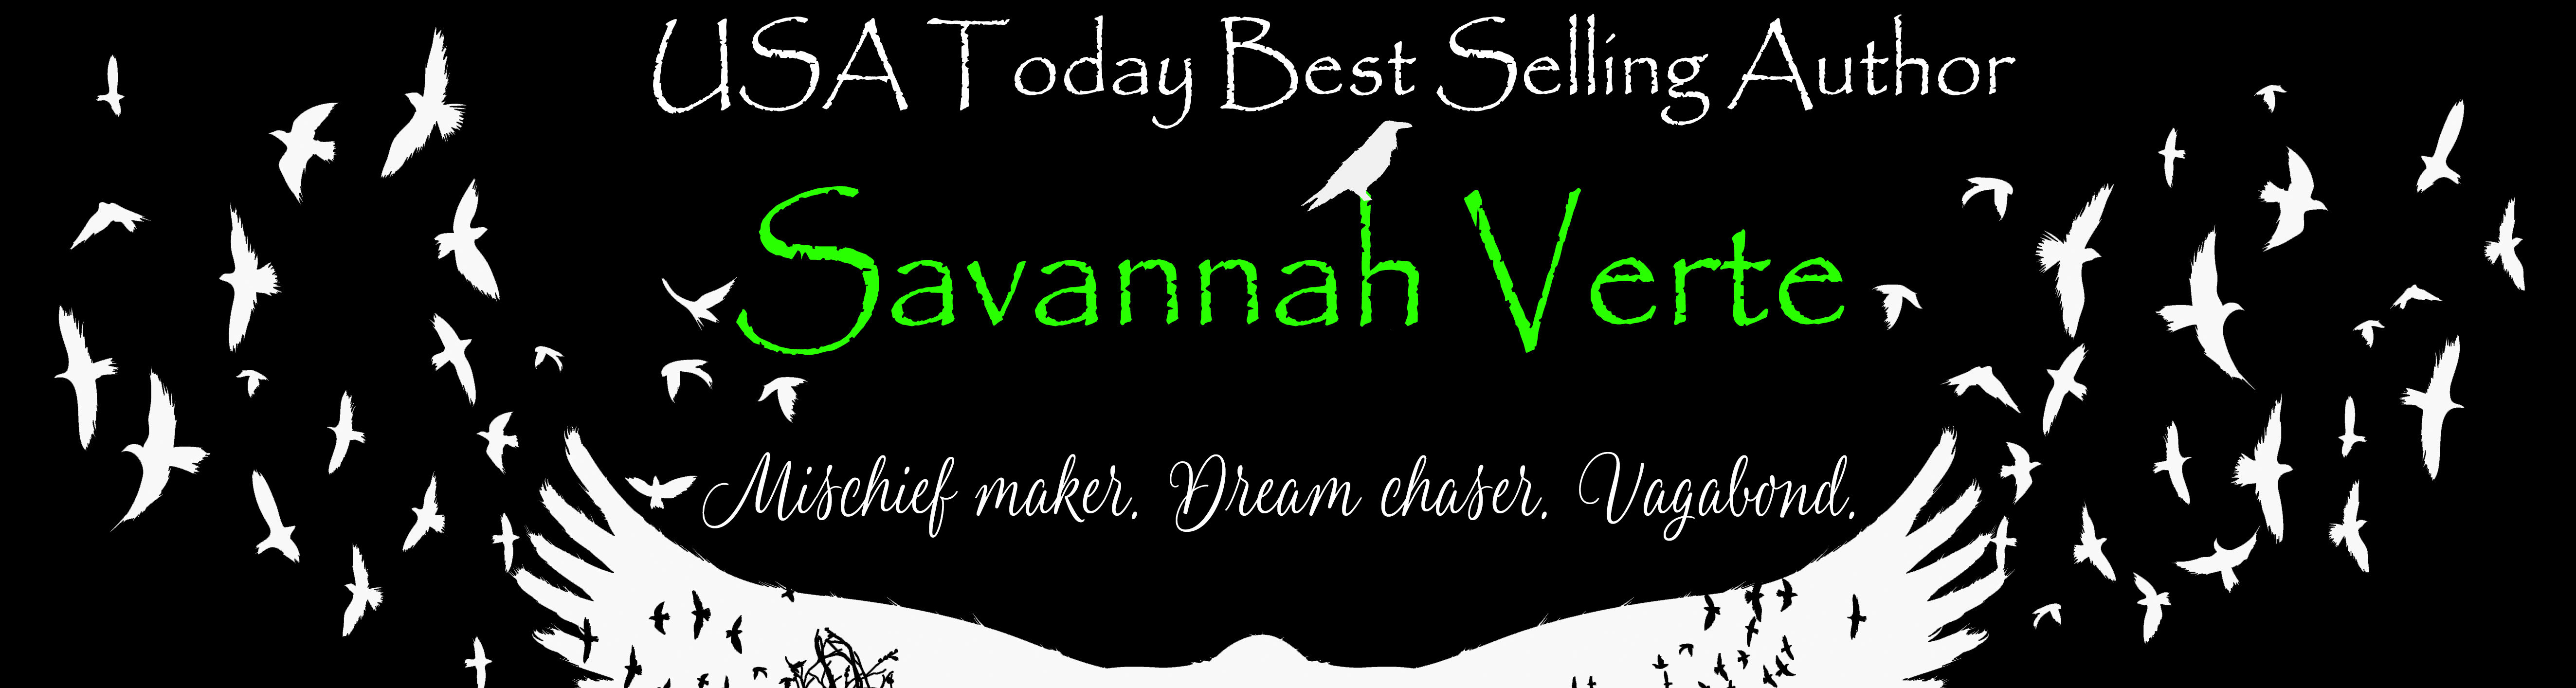 Author Savannah Verte